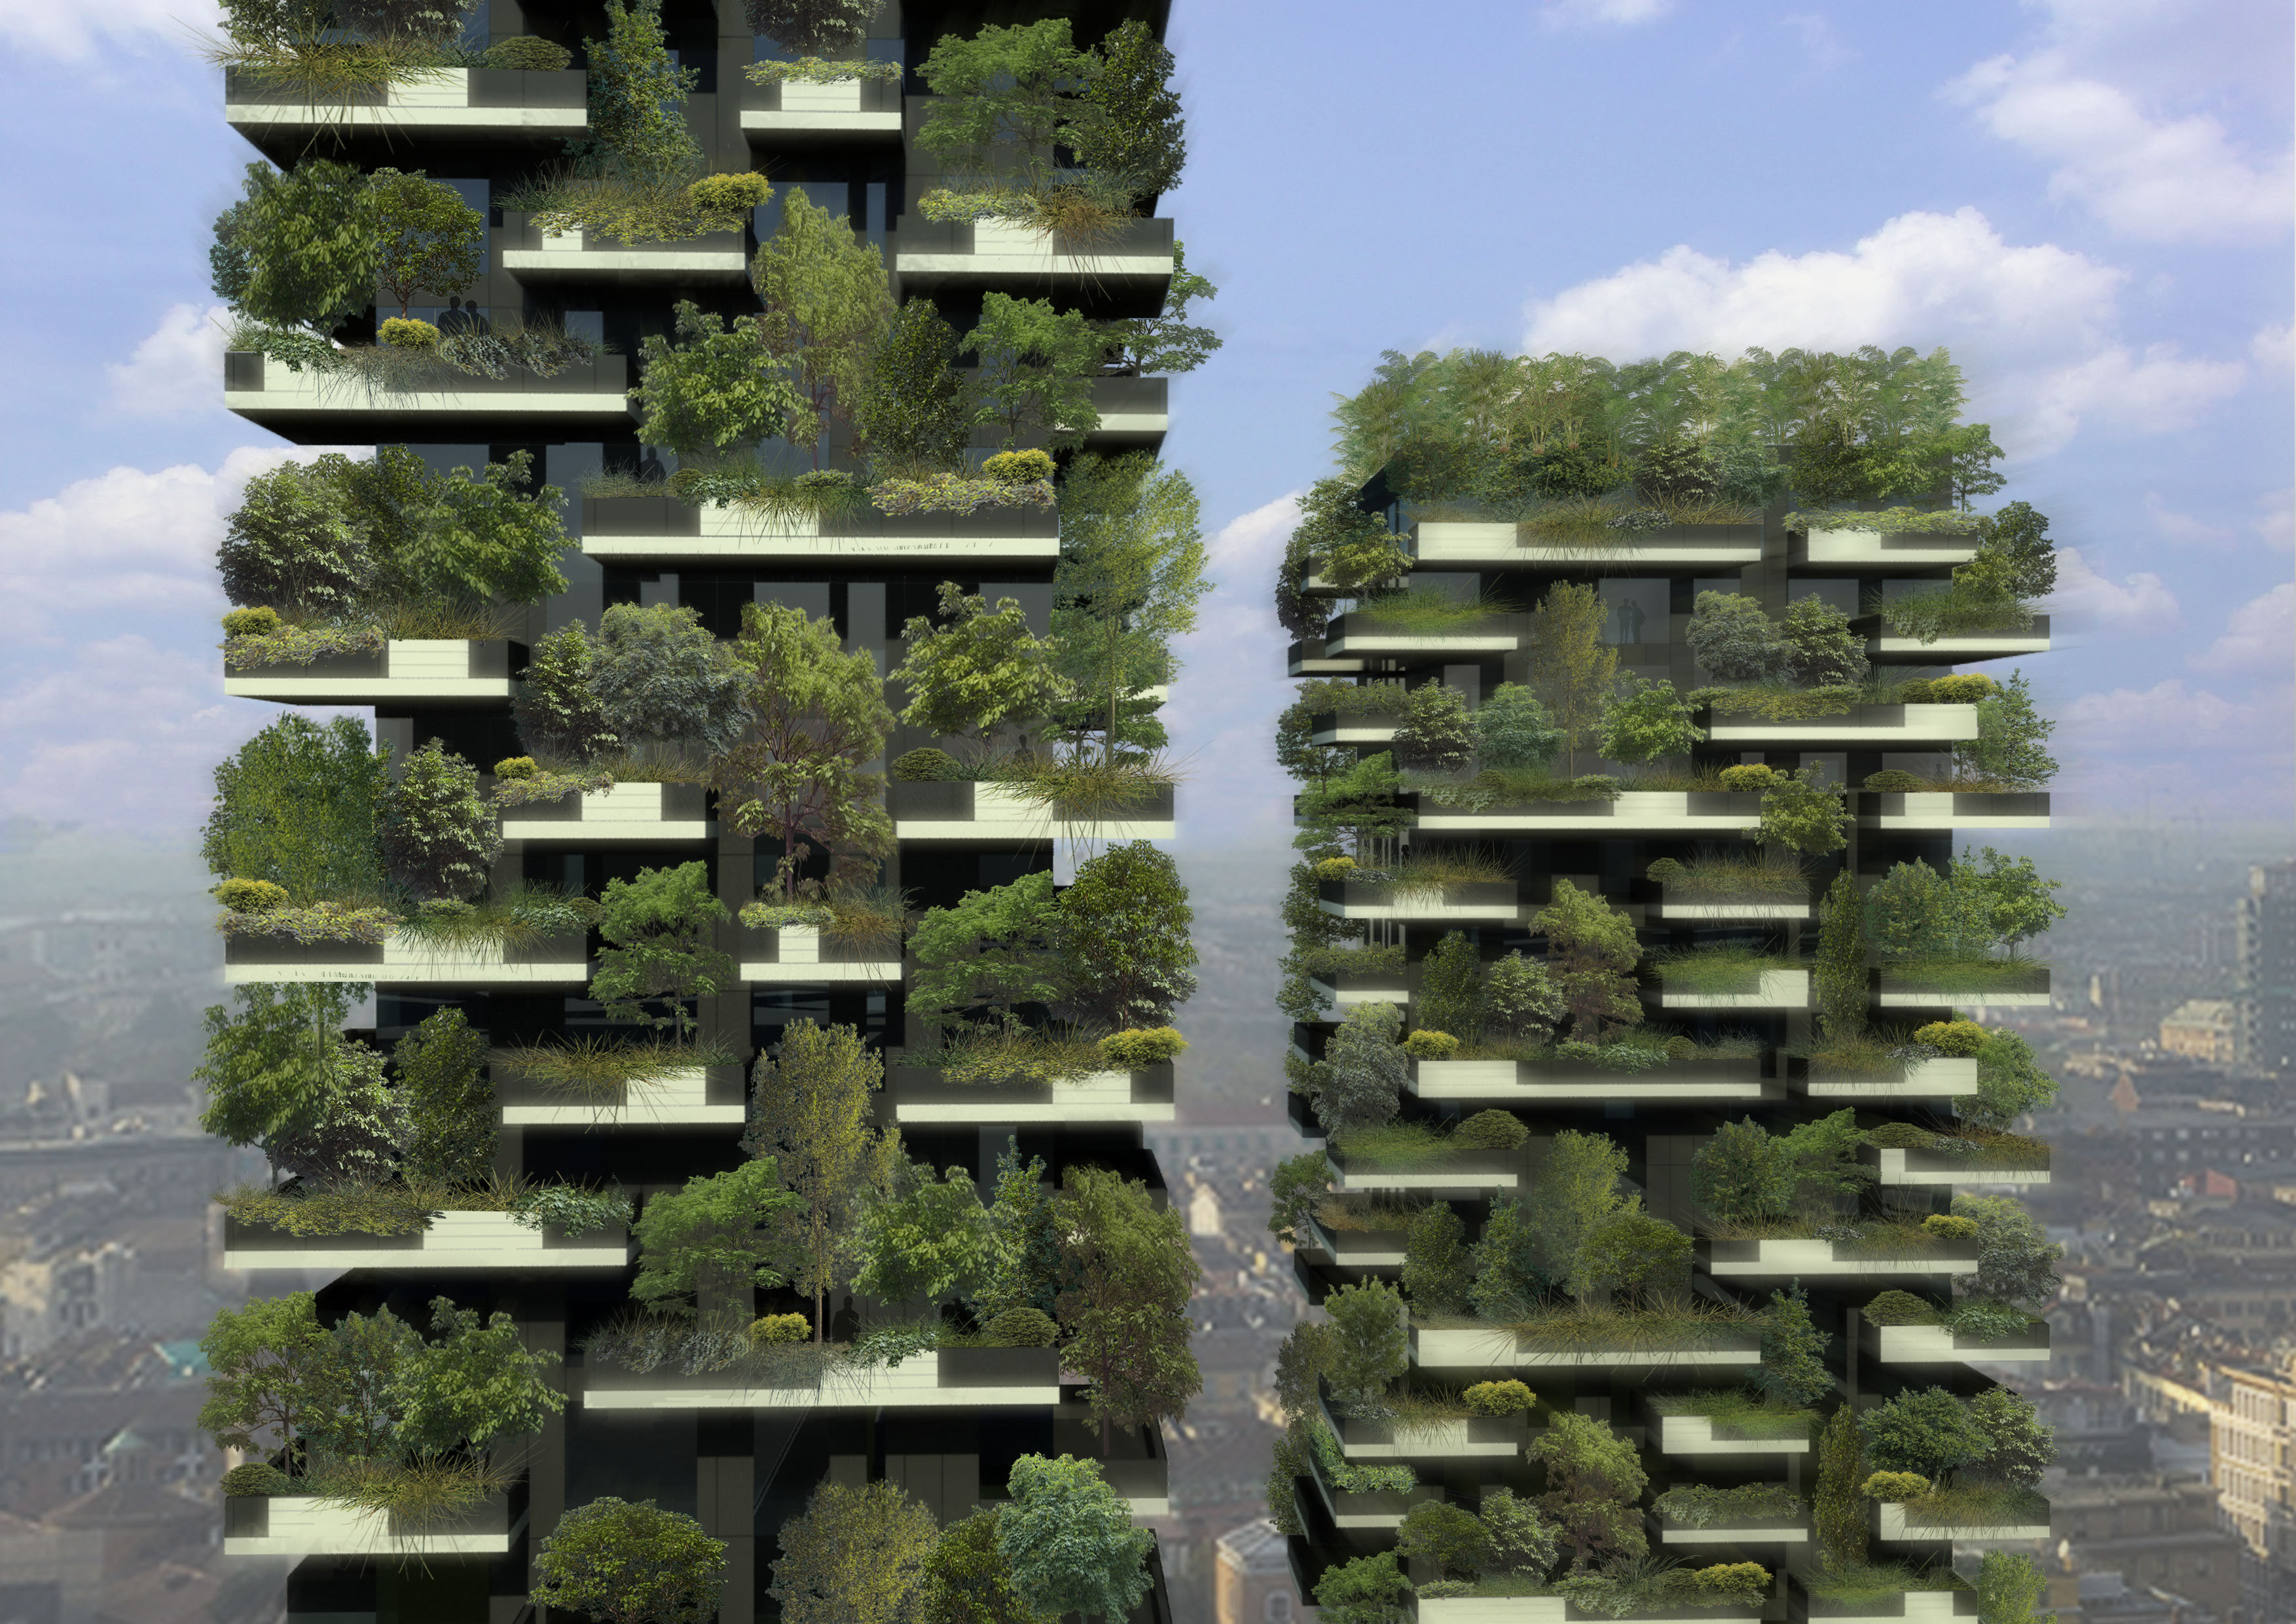 A vertical forest is developing on two skyscrapers in Milan, IT